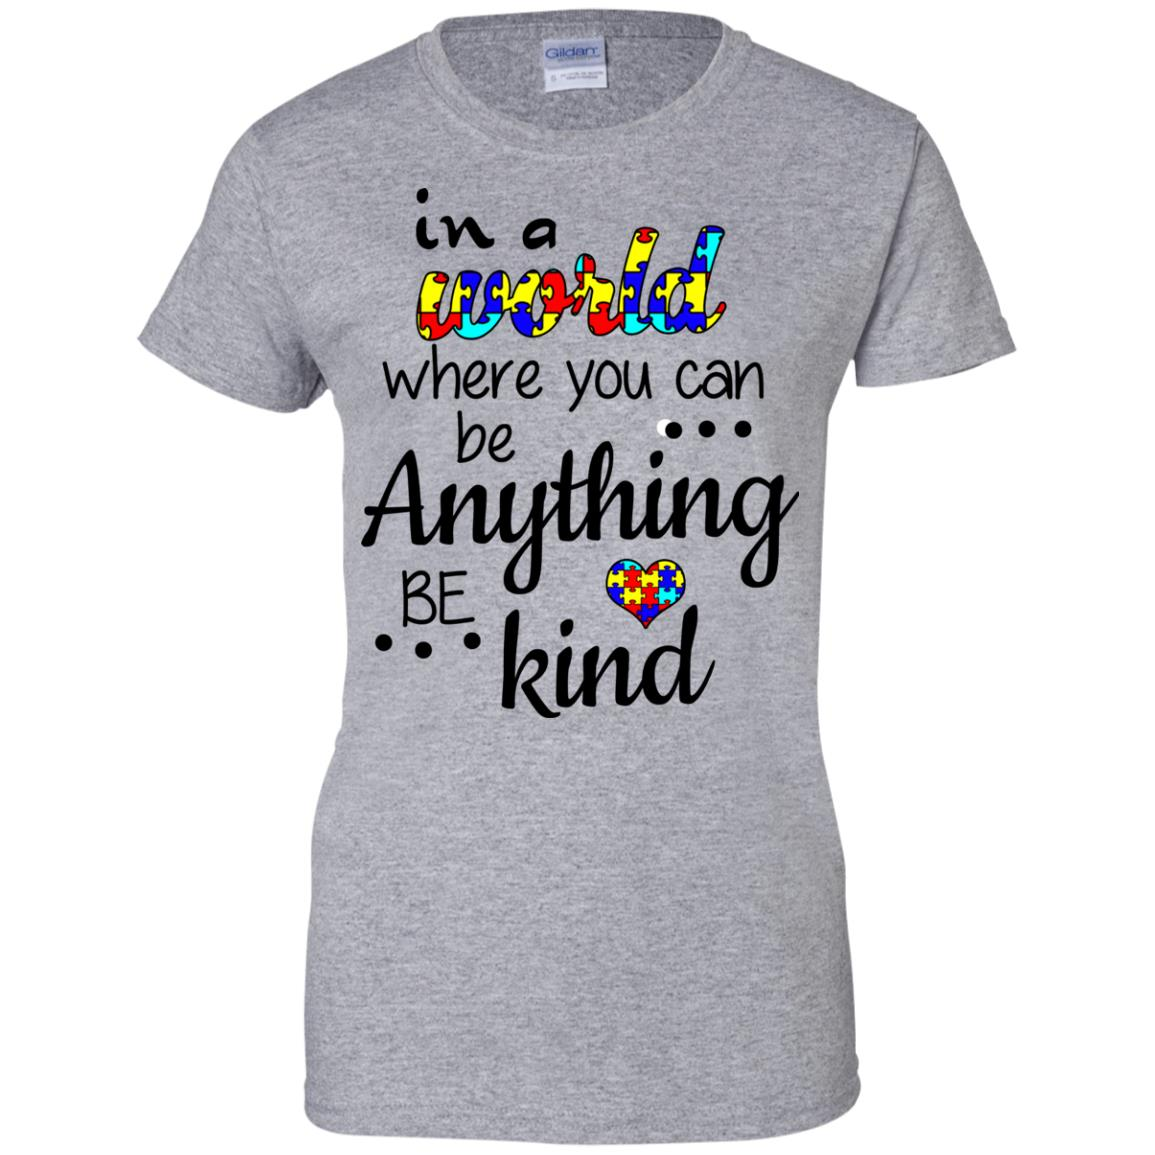 image 674 - Autism: In a World Where You Can Be Anything Be Kind Shirt